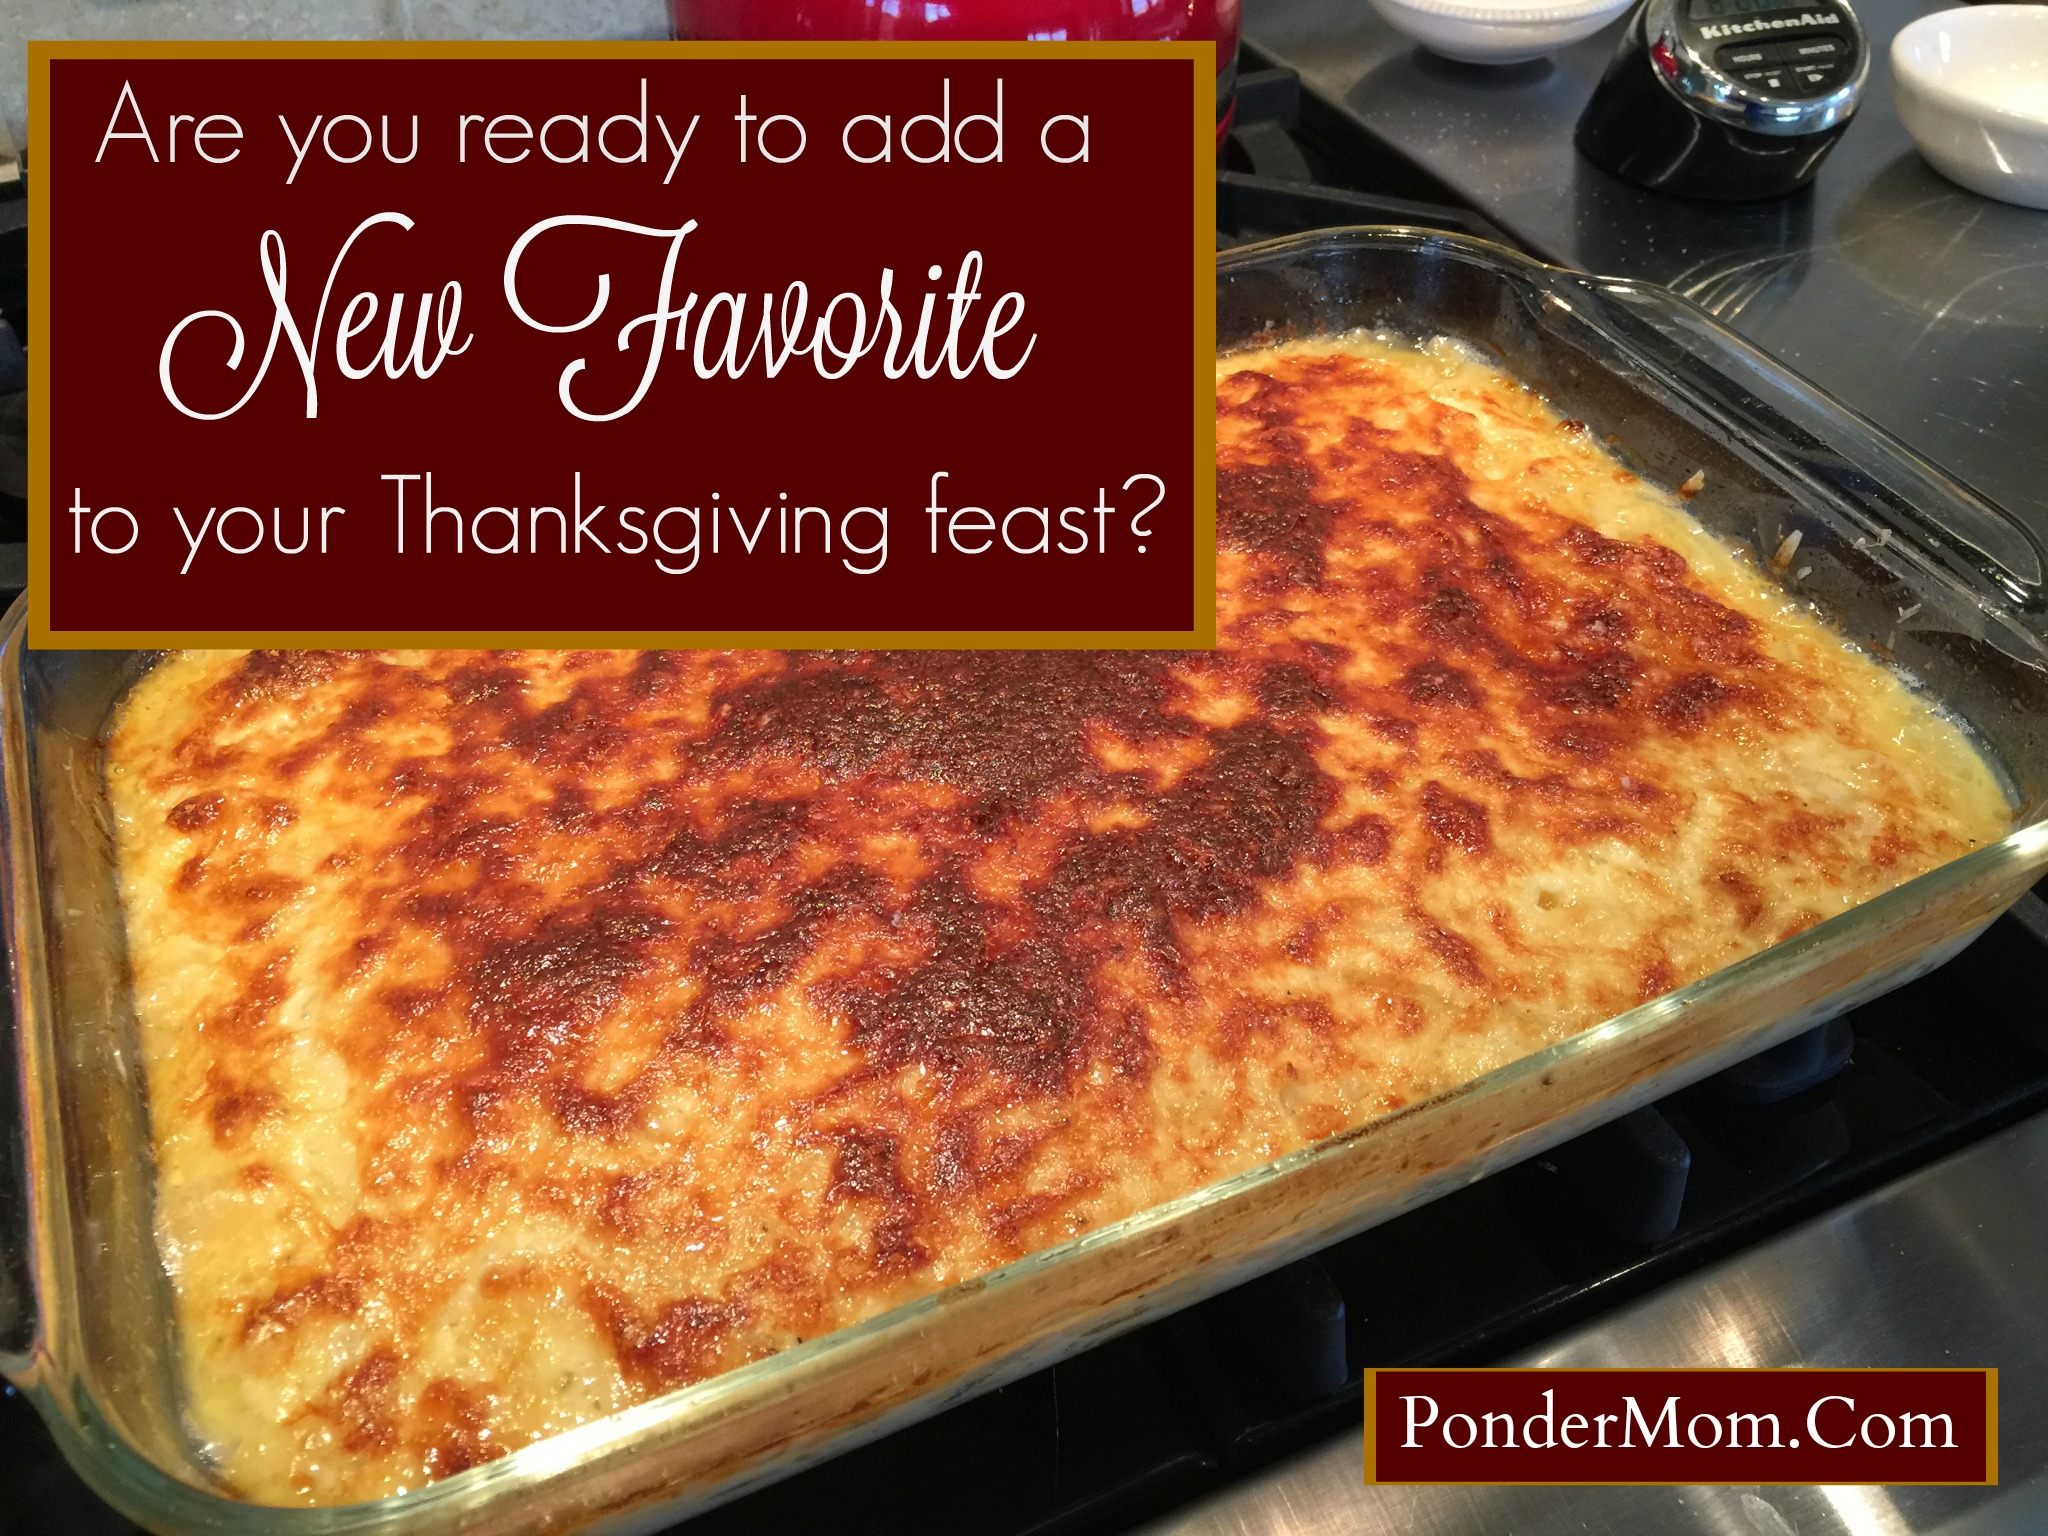 How About Serving a New Thanksgiving Side Dish?: Onion Casserole with Parmesan Crust